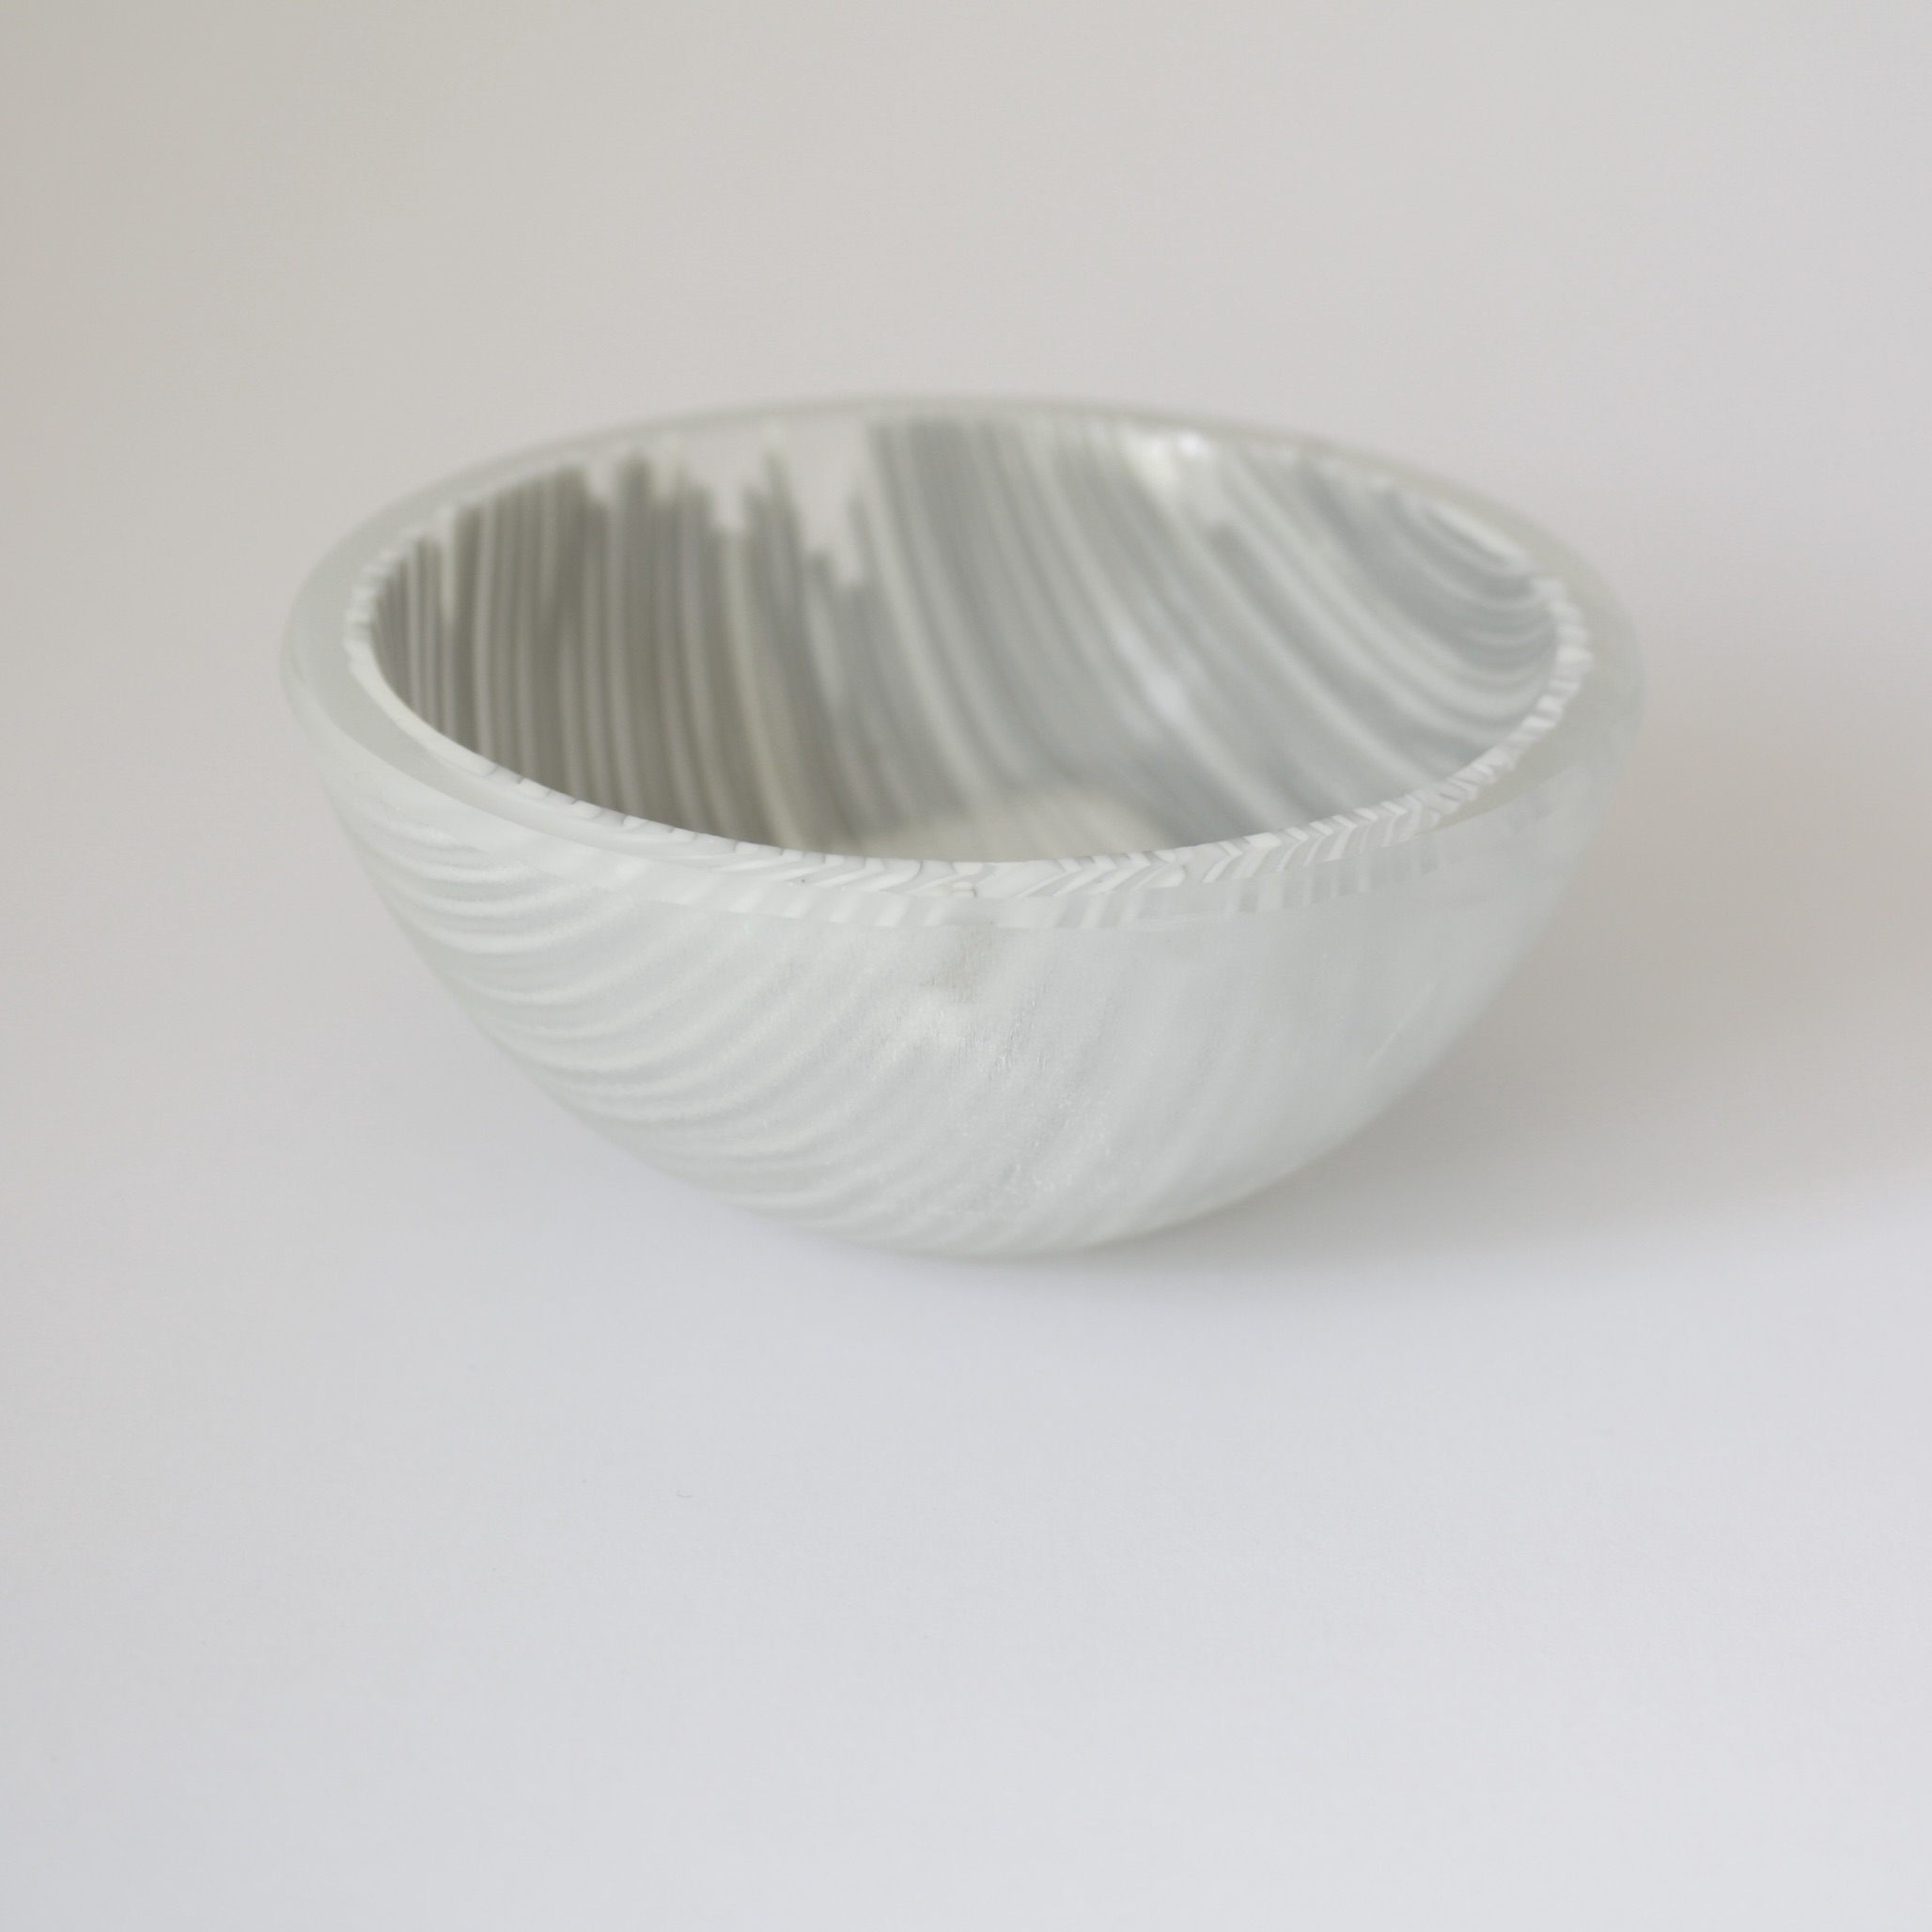 grey and white striped fused glass trinket bowl by Bridget Marchi